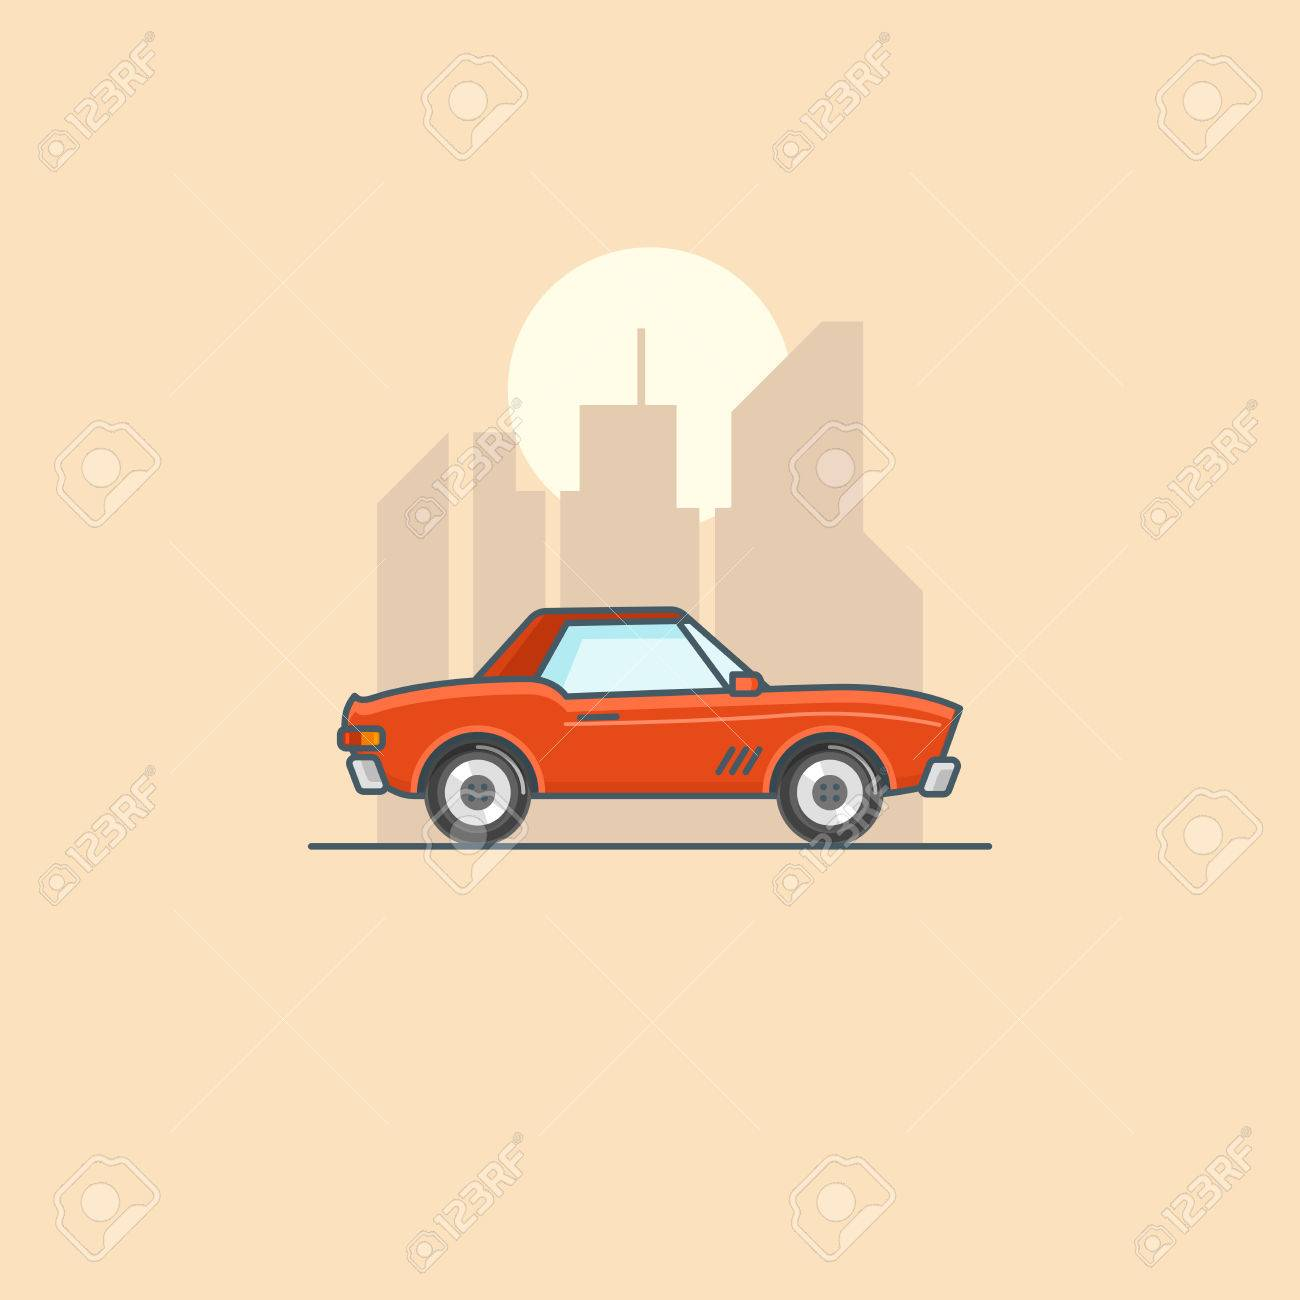 Retro American Muscle Car In City Line Art Cartoon Illustration